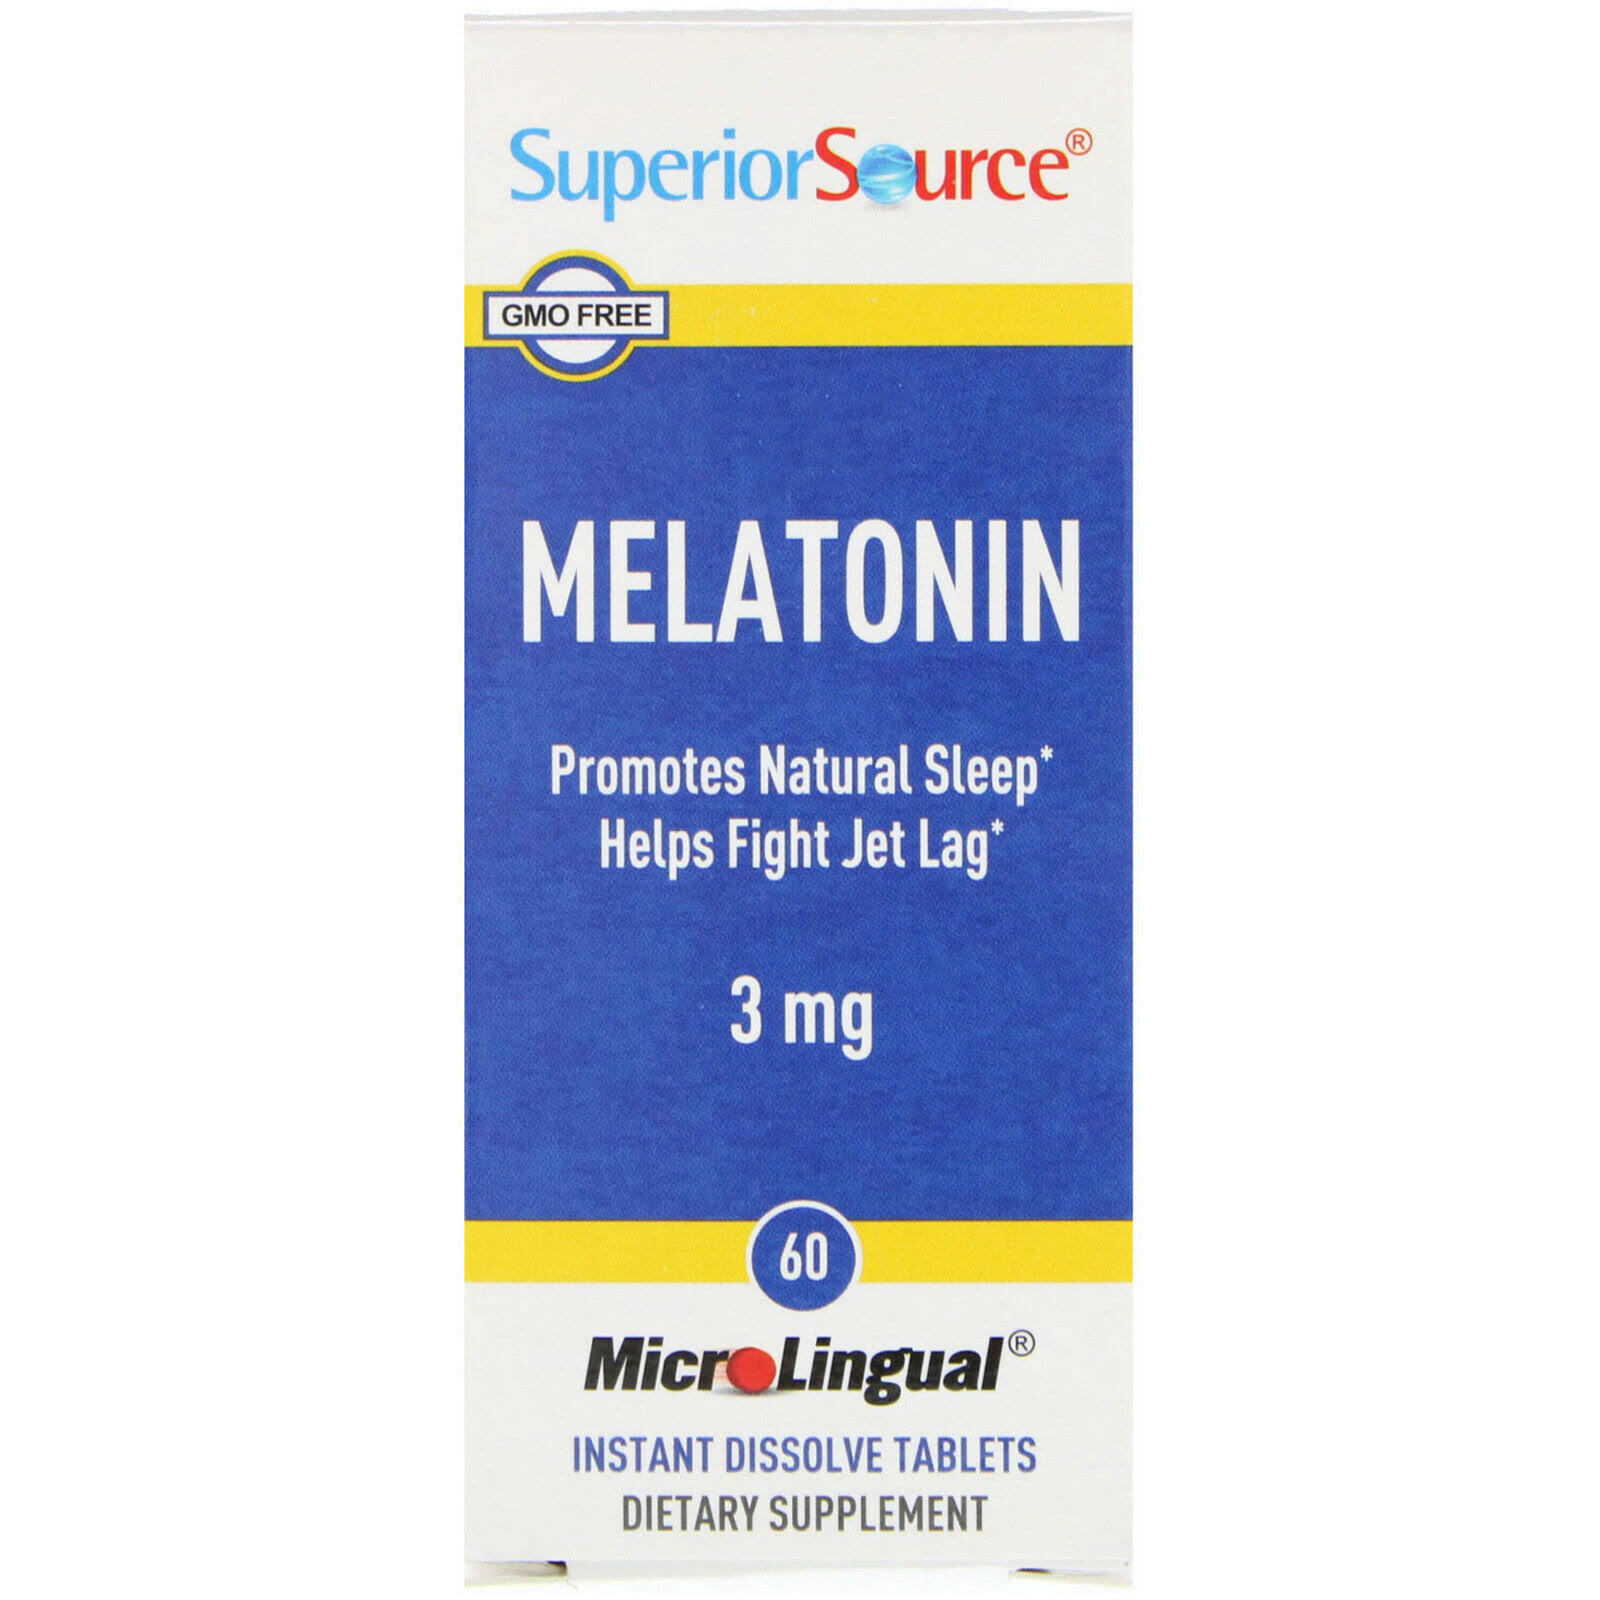 Superior Source Melatonin Supplement - 3mg, 60 Tablets